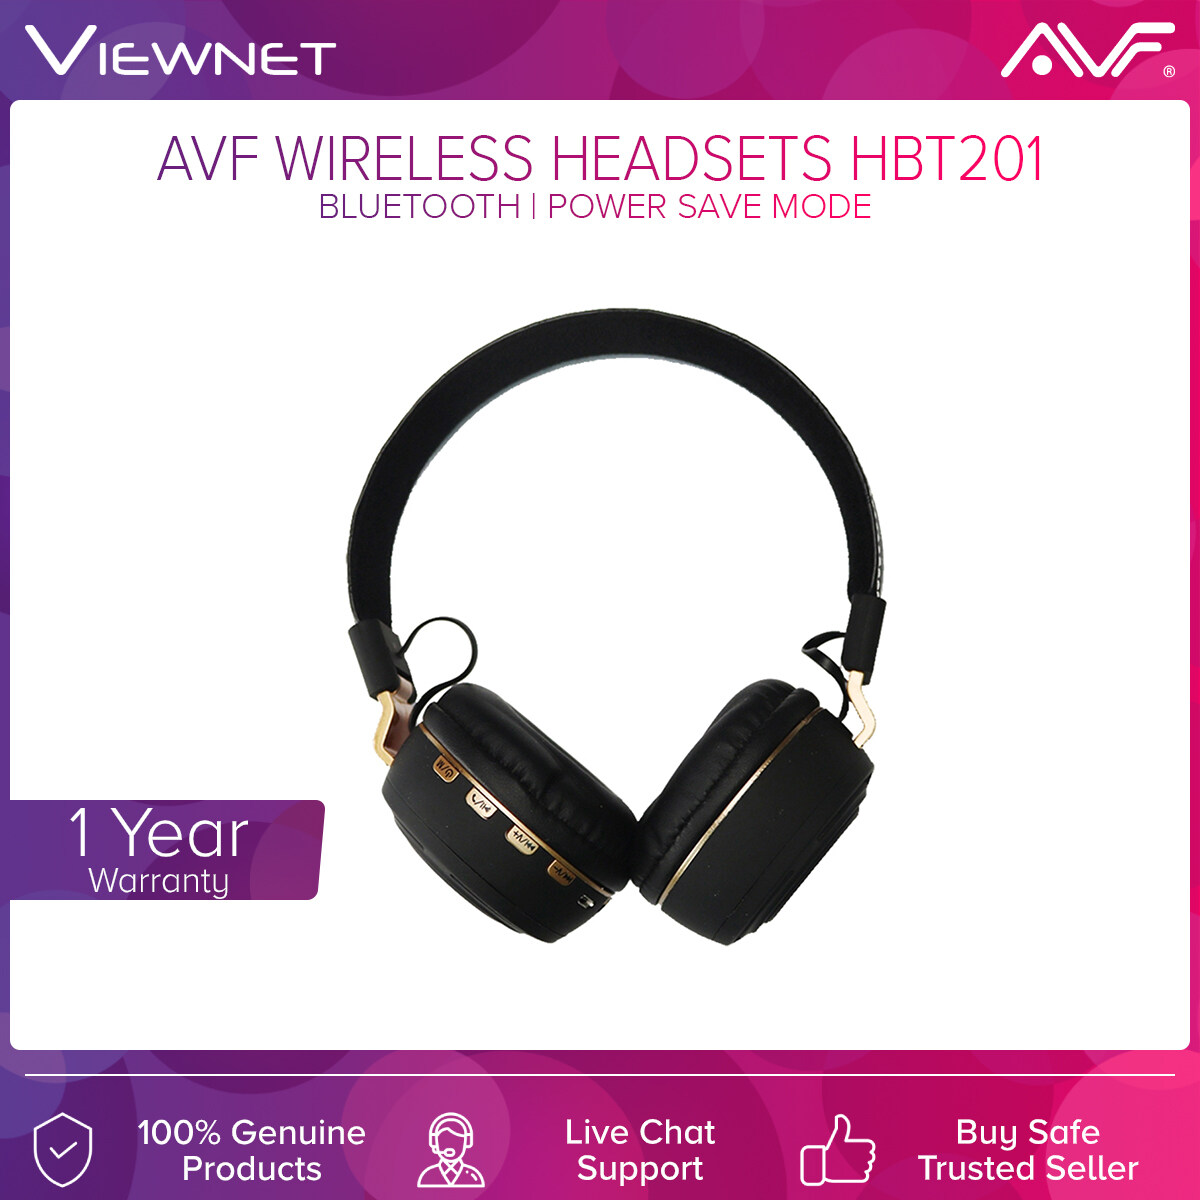 AVF Wireless Headsets HBT201 with Bluetooth, AUX Support, Power Save Mode, Up To 5 Hours, Foldable Design